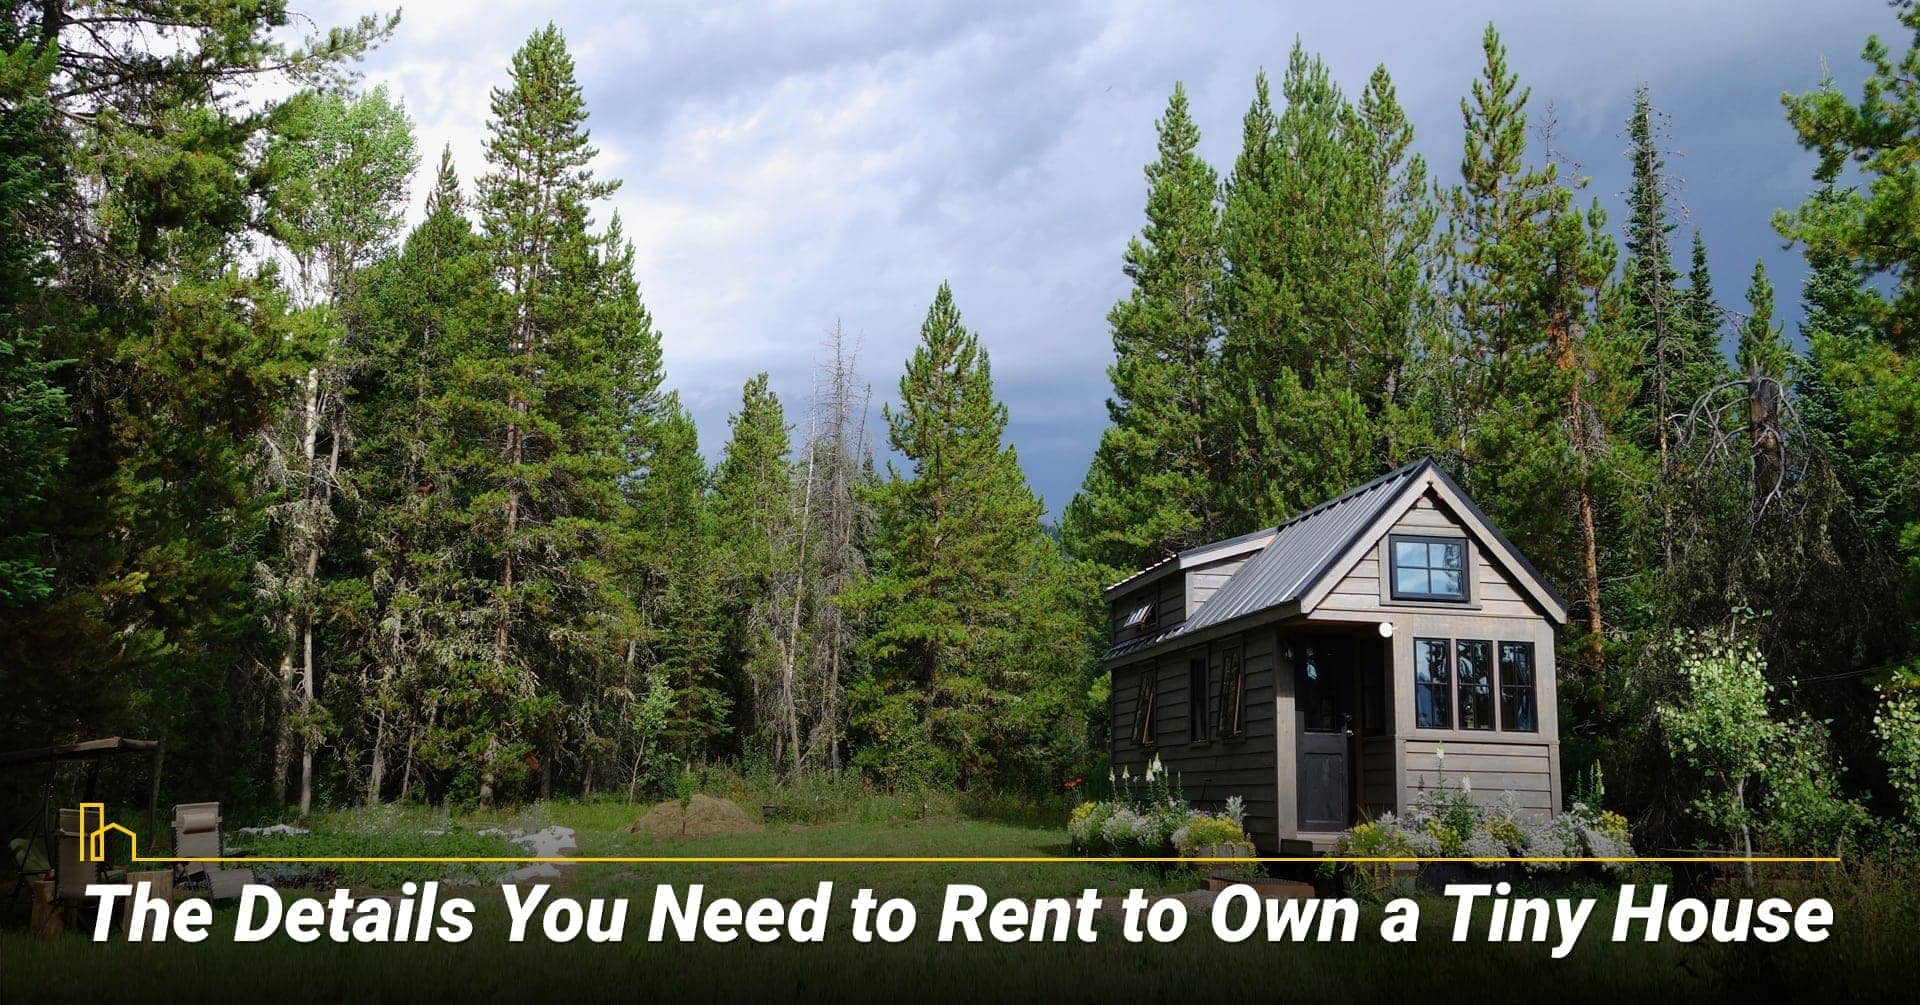 The Details You Need to Rent to Own a Tiny House, things need to know about rent to own a tiny house